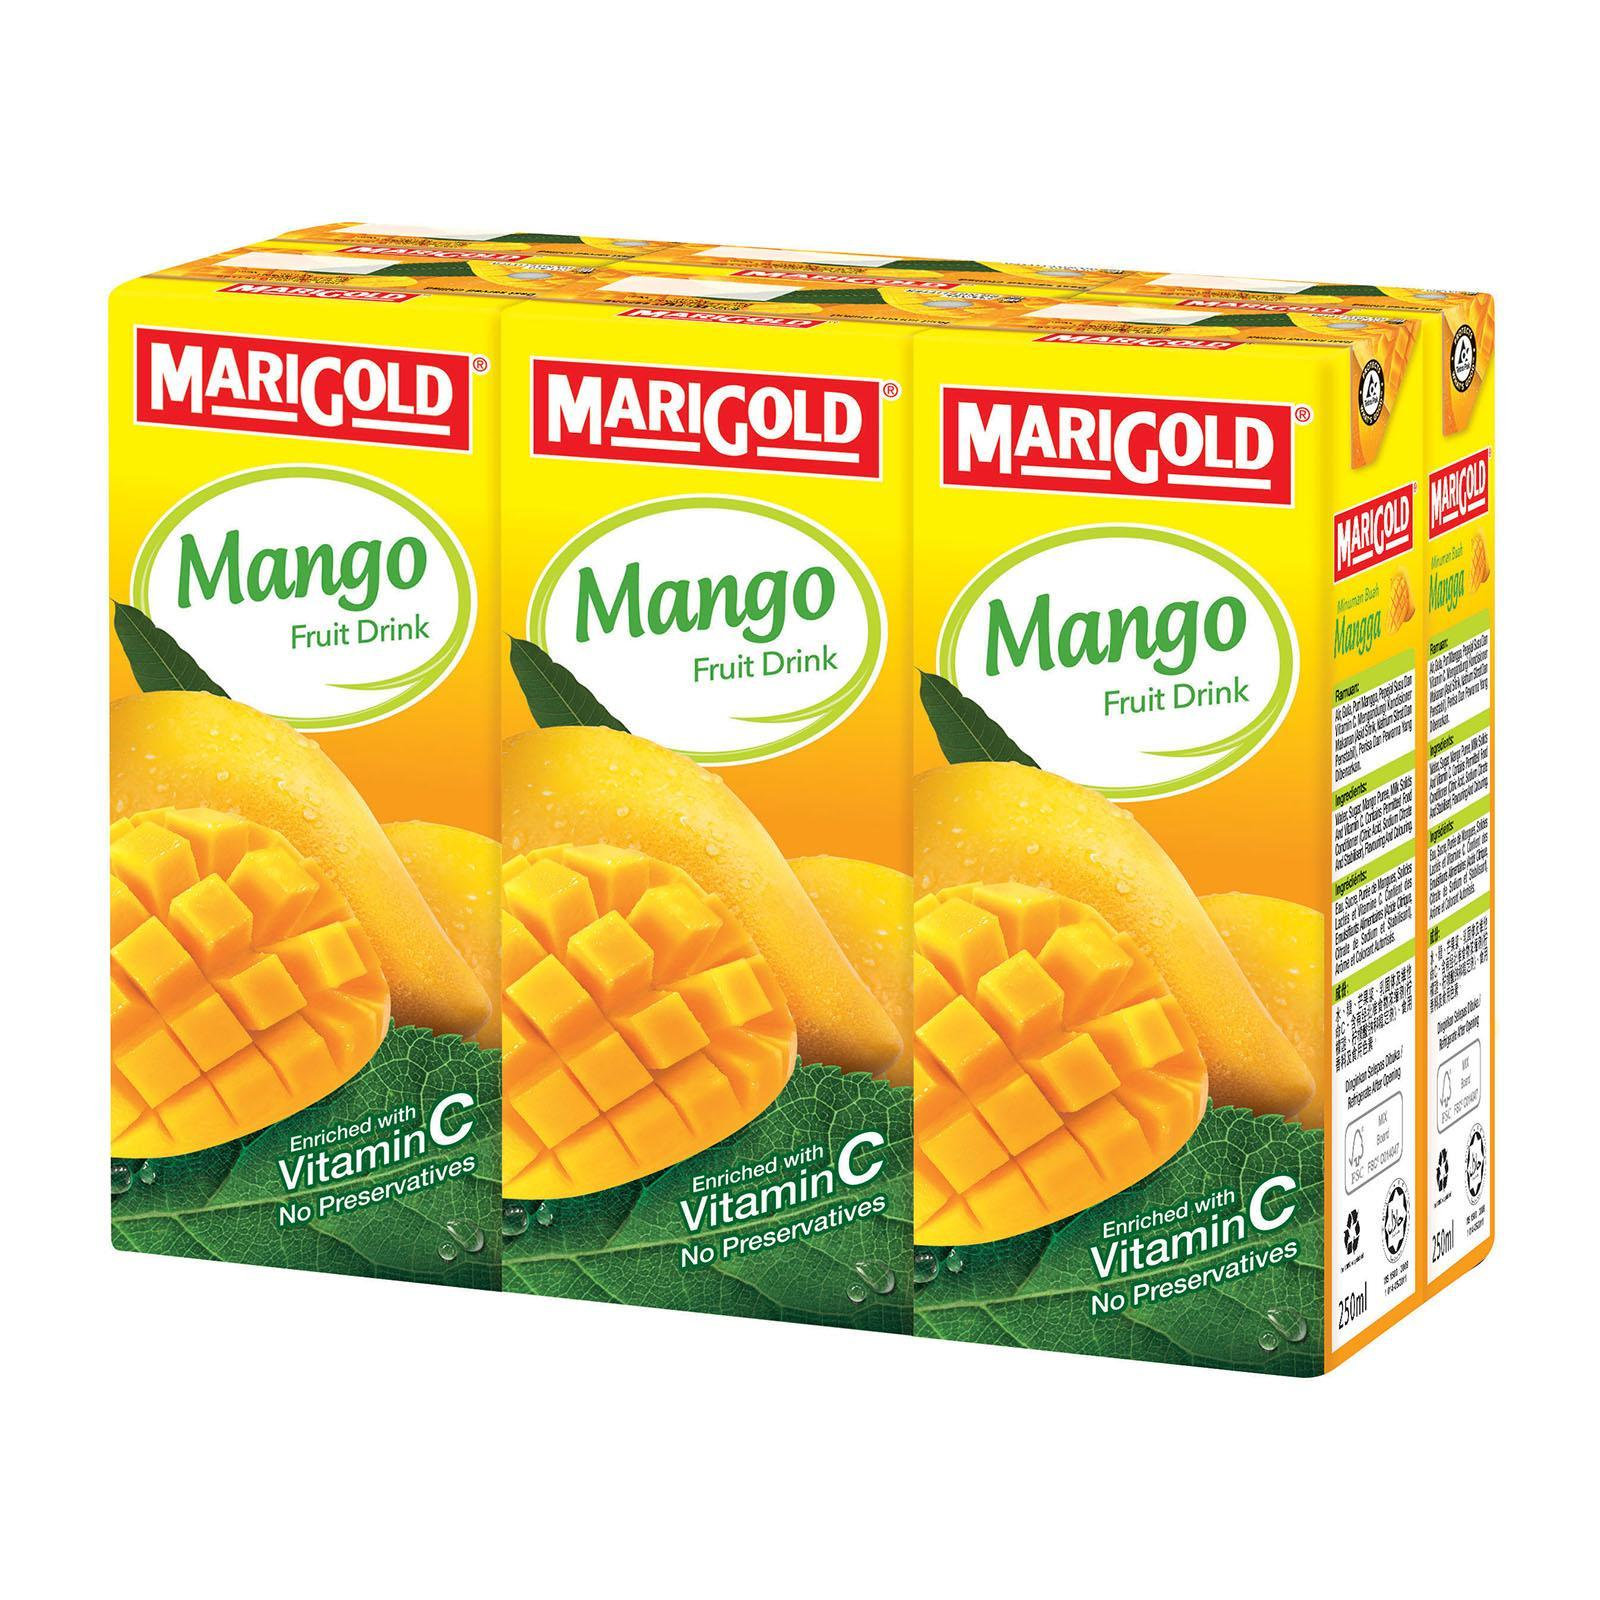 MARIGOLD Mango Packet Drink